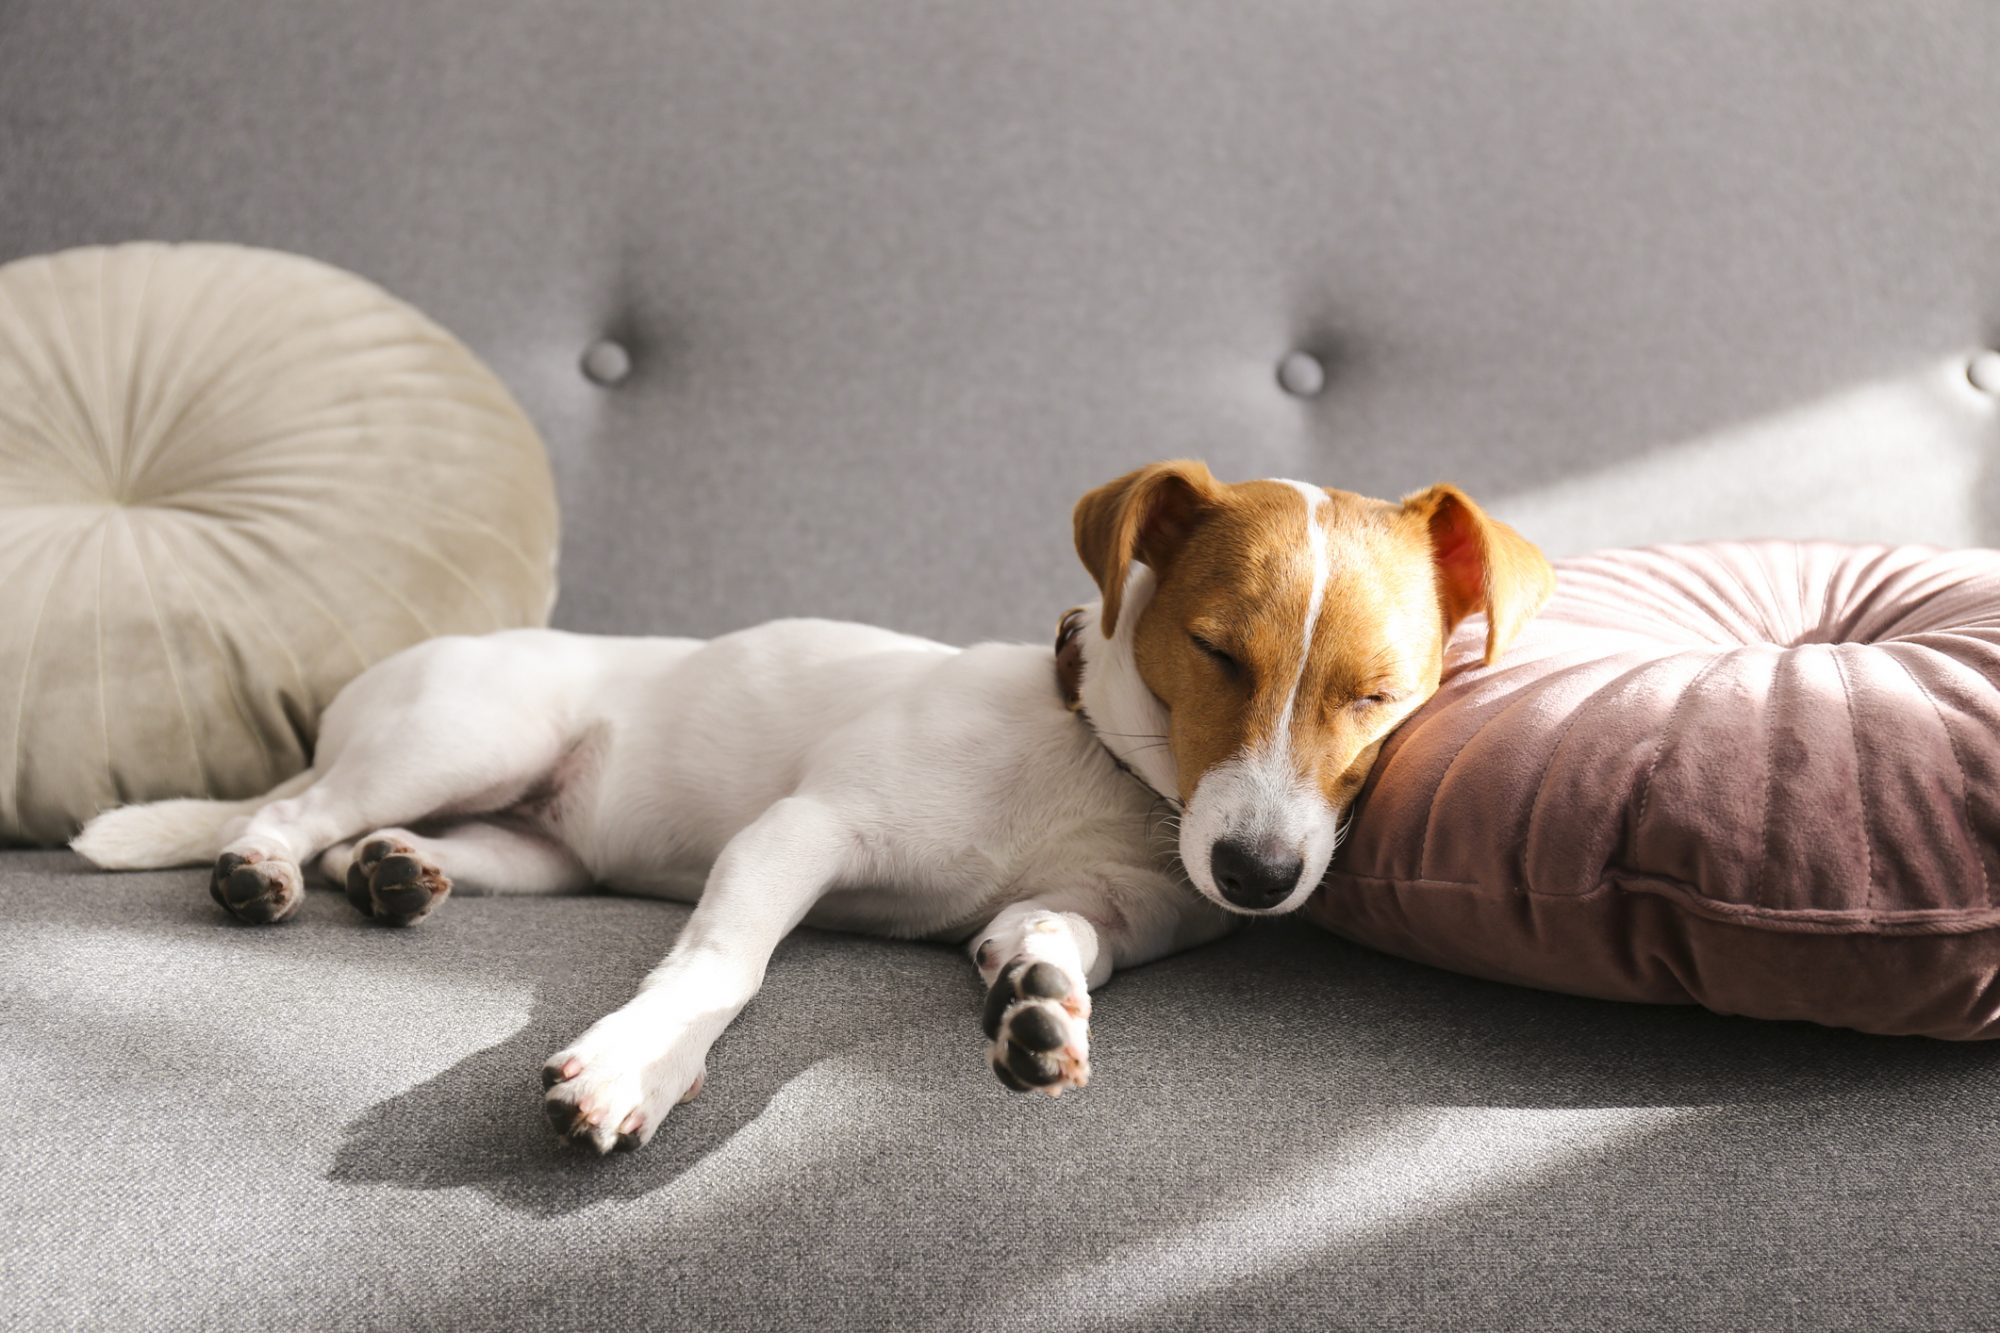 Puppy asleep on couch next to circular cushions in apartment home